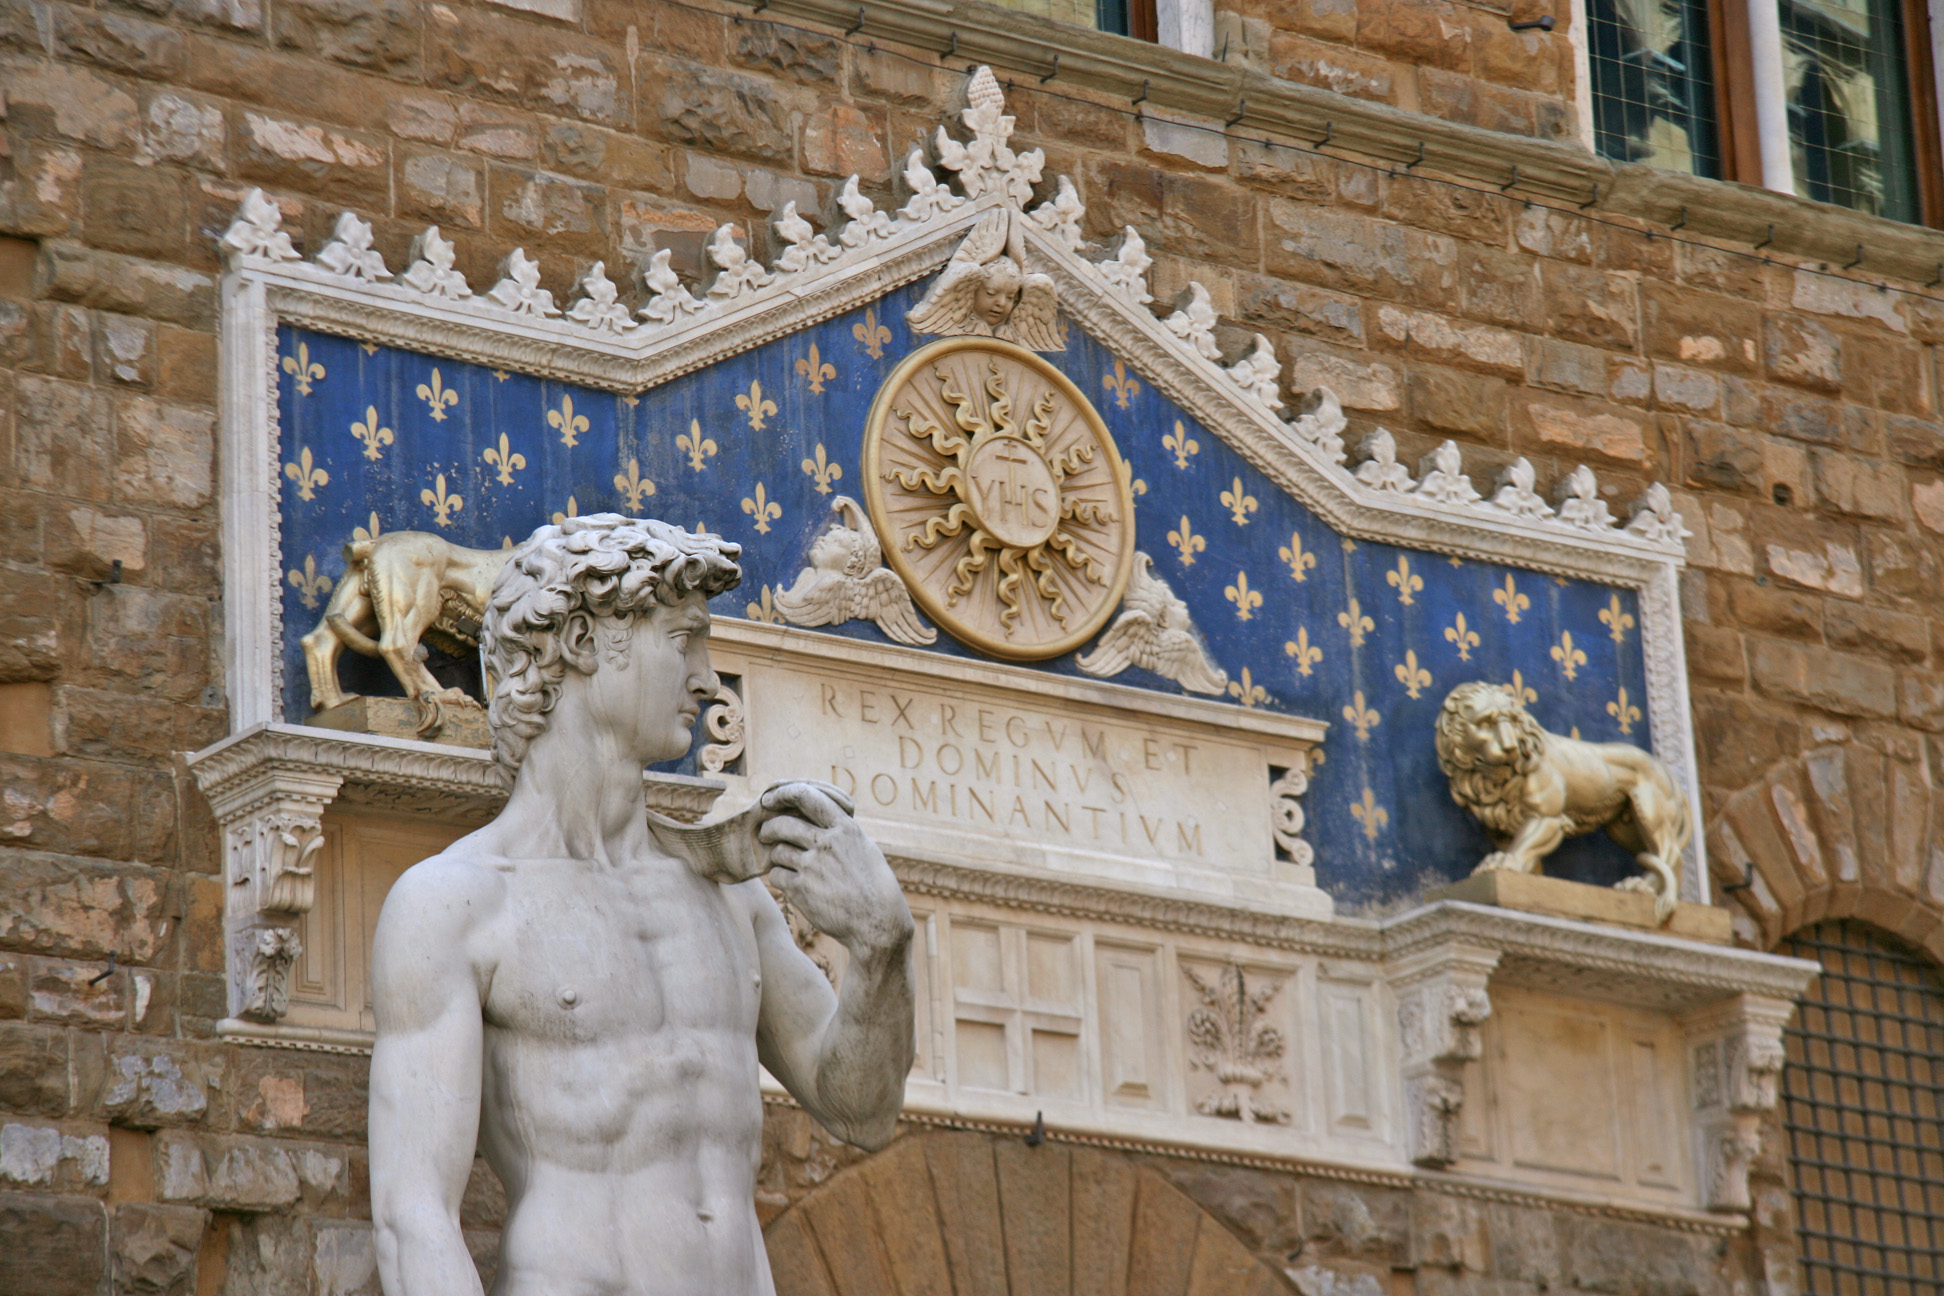 David of Michelangelo (copy) at the entrance of the Palazzo Vecchio.